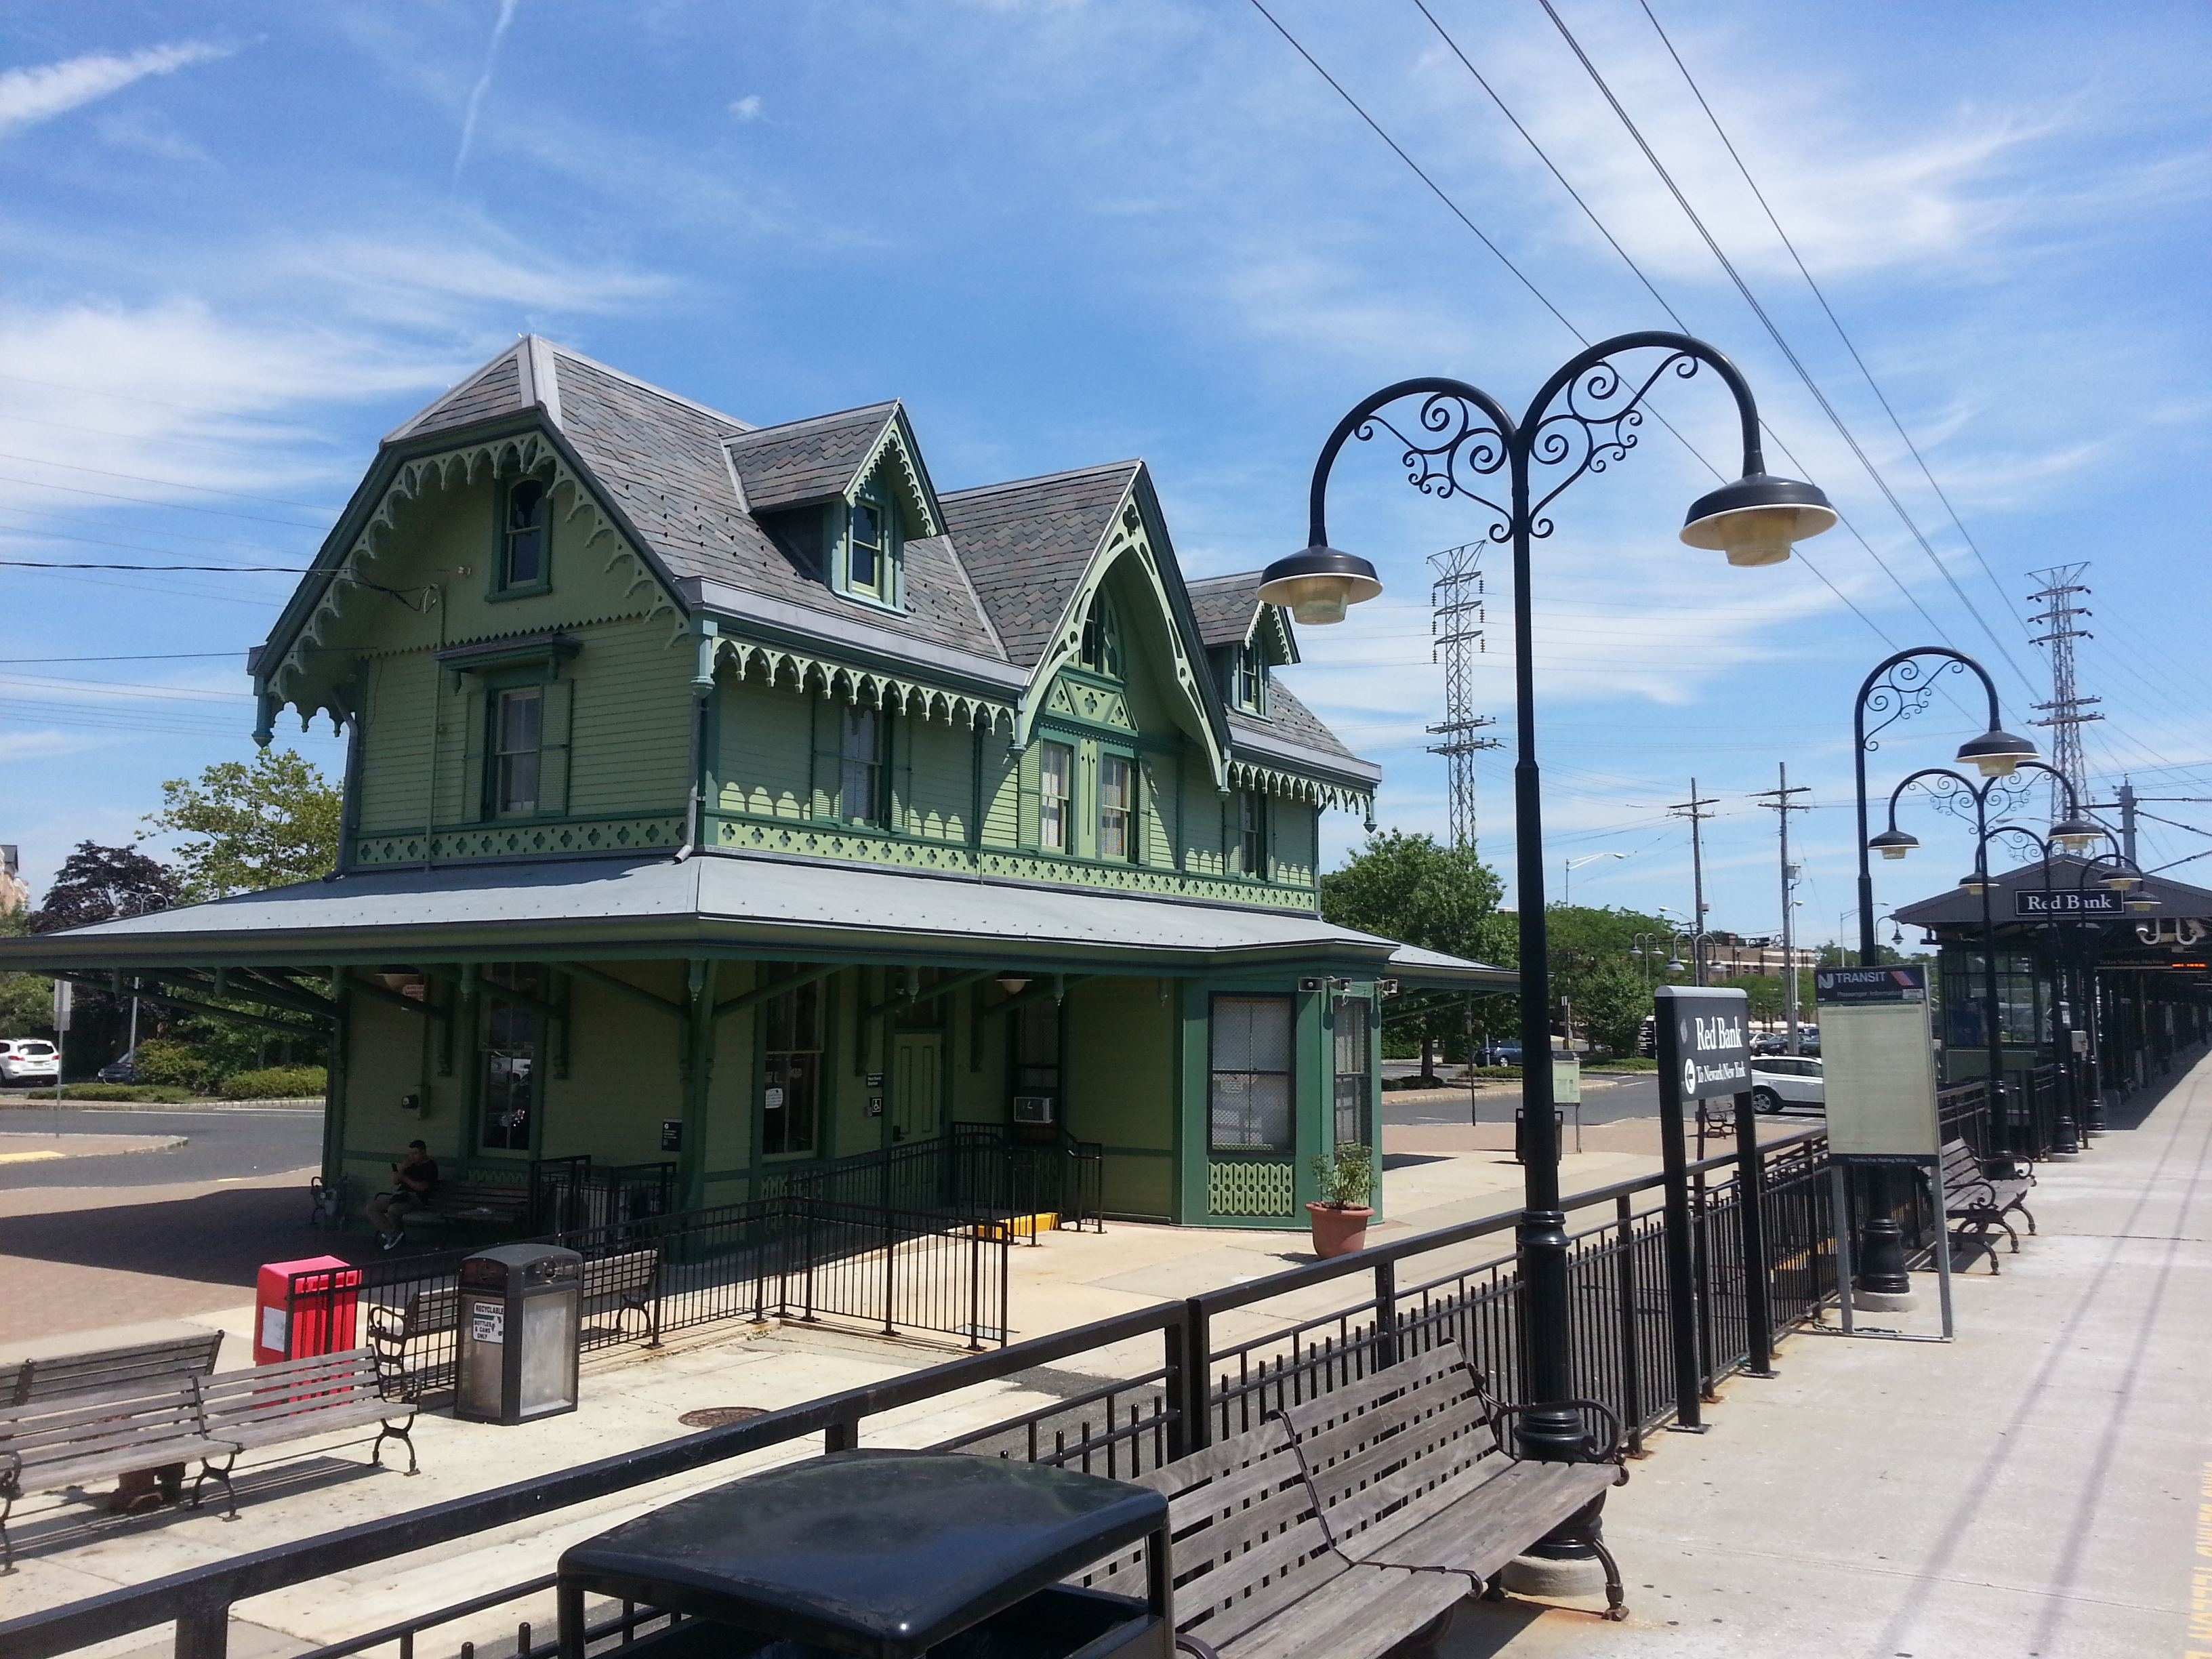 The Red Bank train station, pictured here, is less than a half mile from Corinthian Cove.